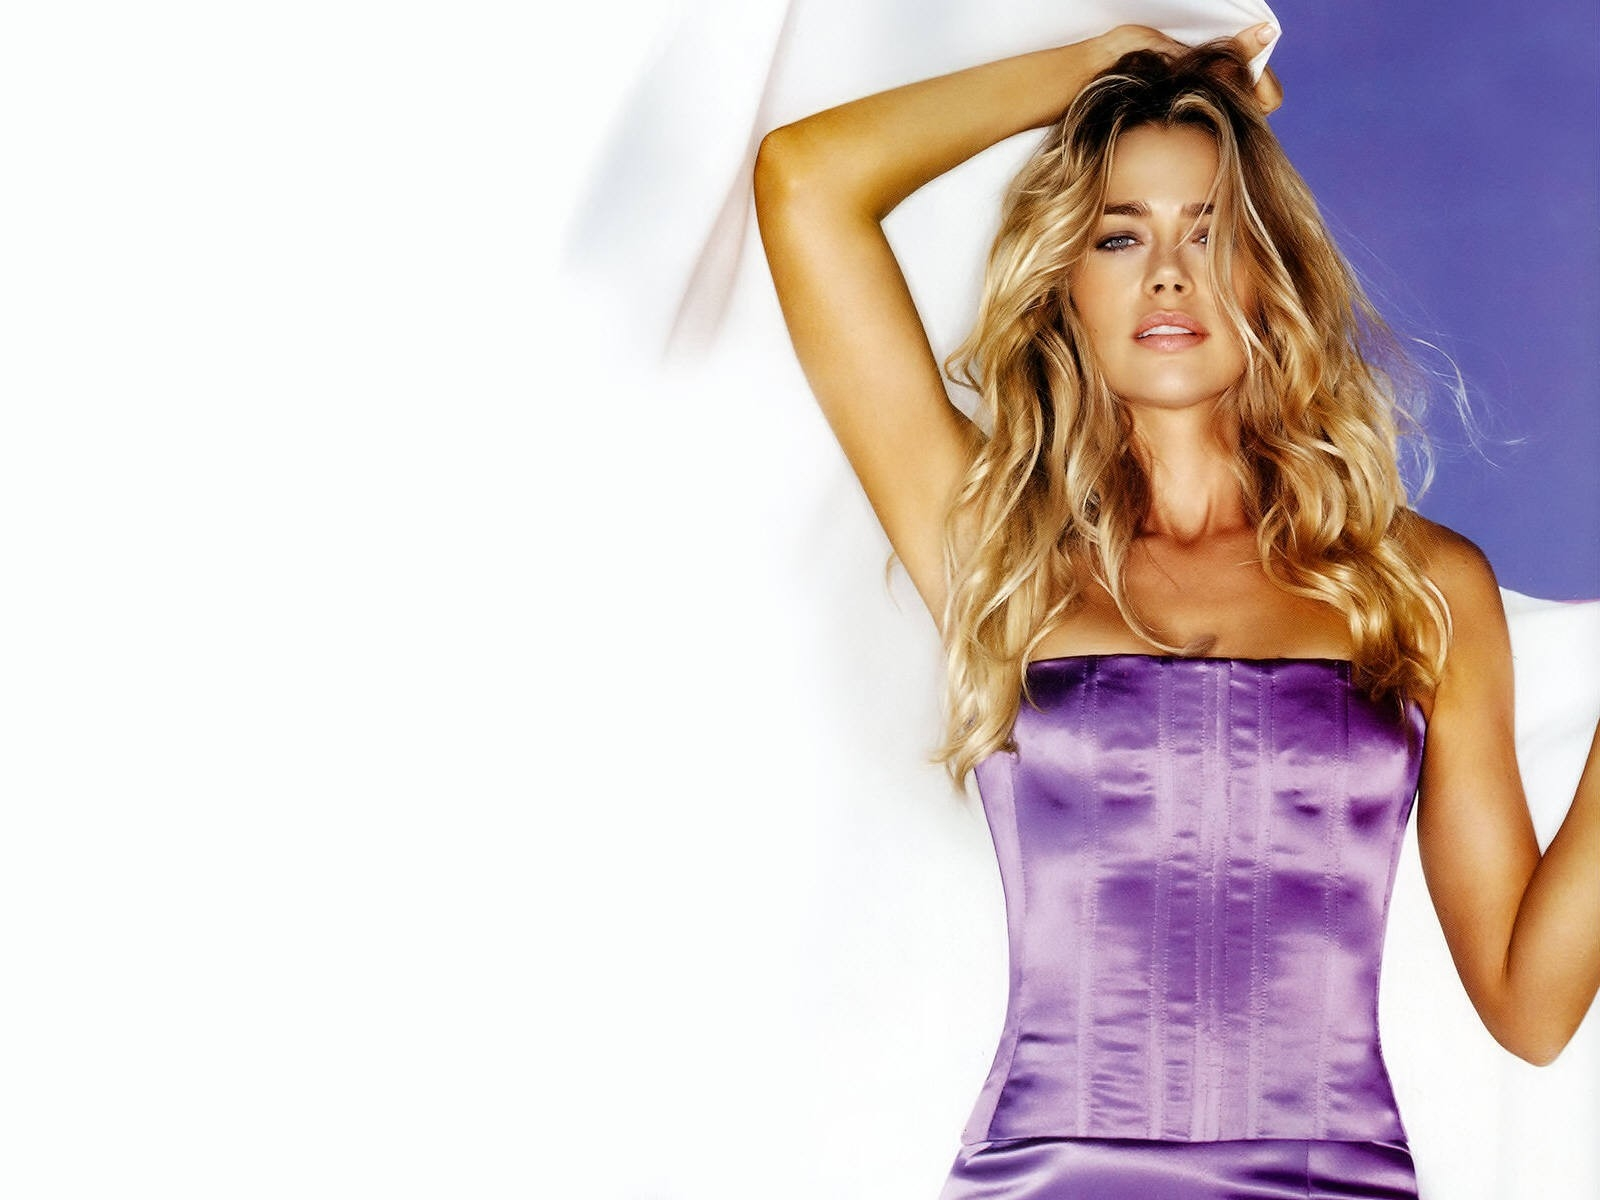 Wallpaper di Denise Richards - 20